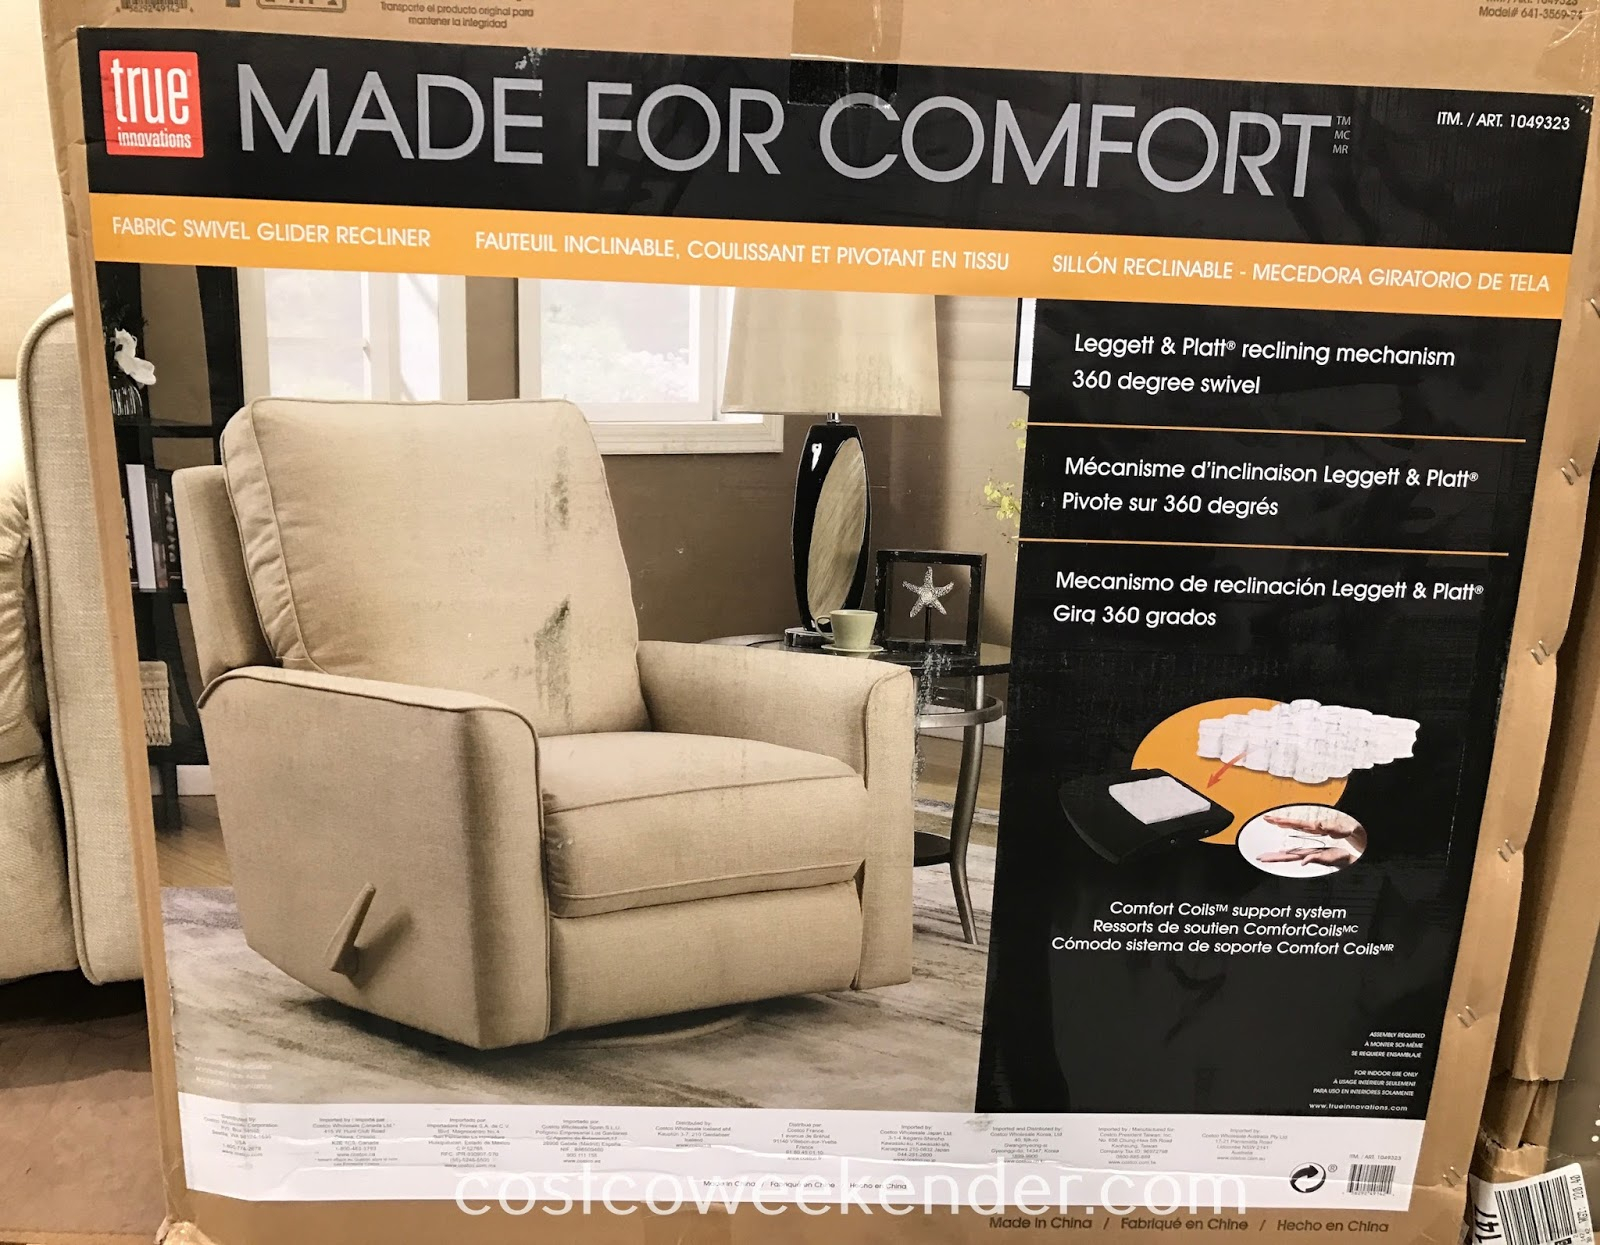 True Innovations Fabric Swivel Glider Recliner Chair | Costco Weekender Intended For Decker Ii Fabric Swivel Rocker Recliners (Image 20 of 20)